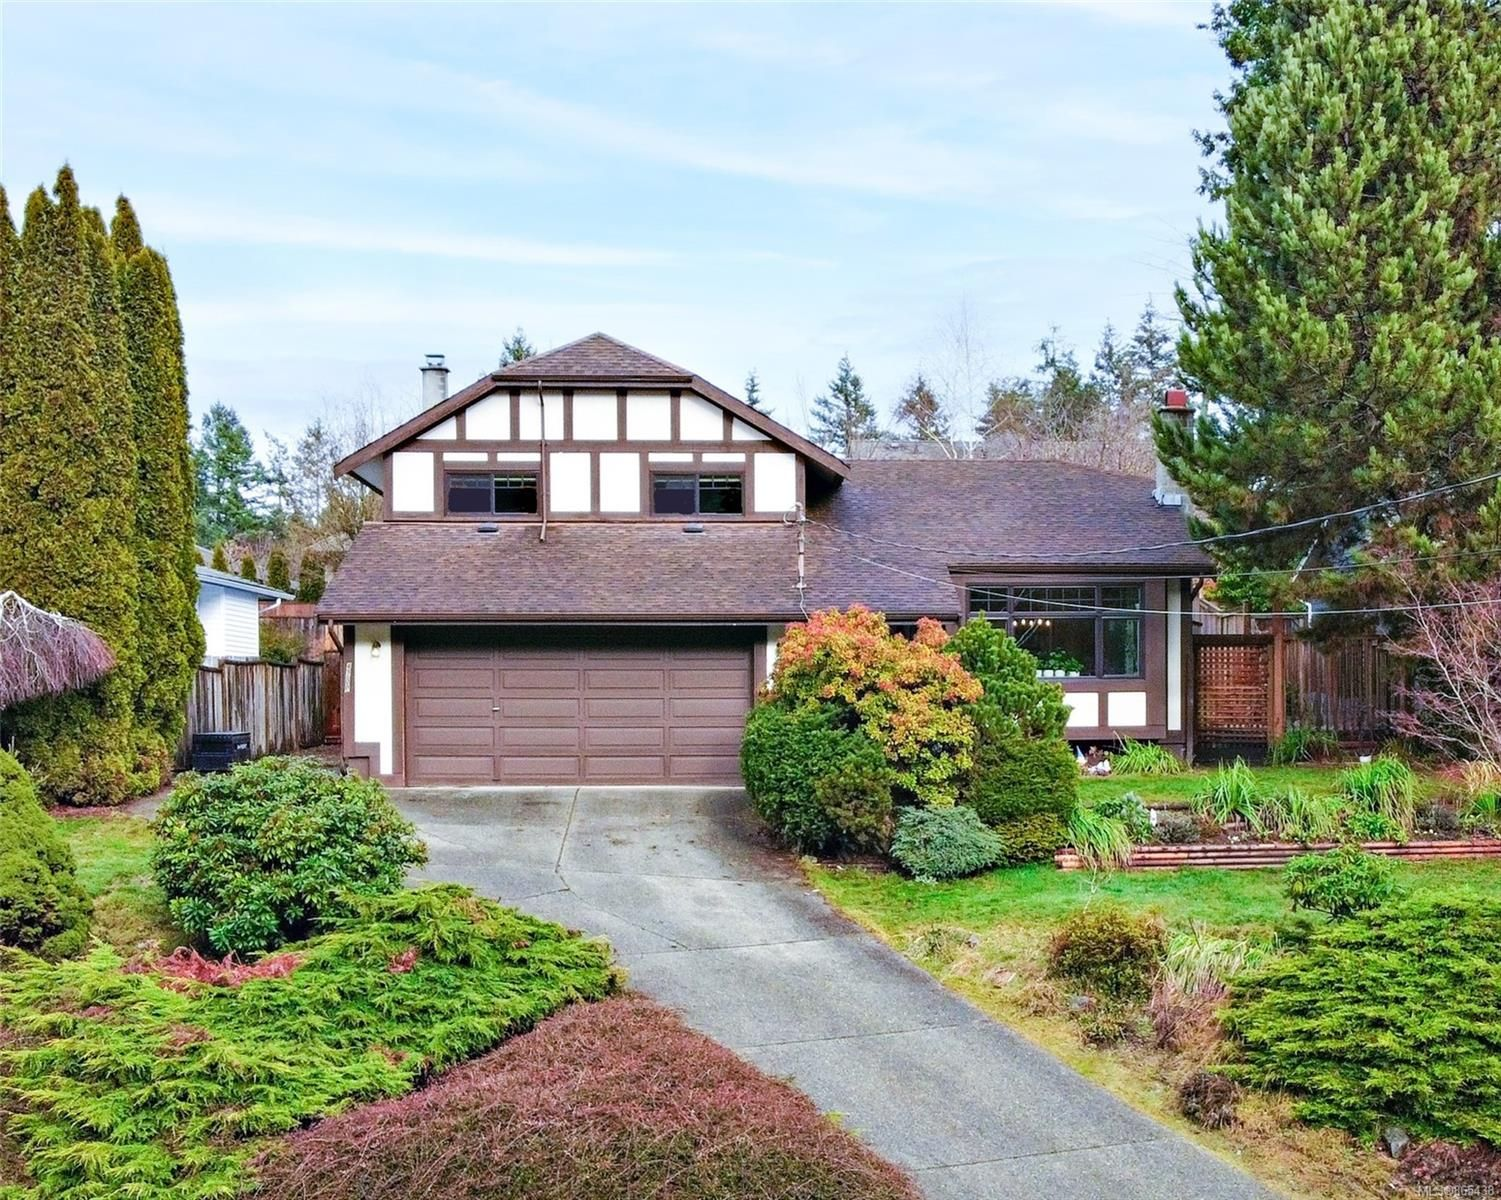 Main Photo: 4200 Ross Rd in : Na Uplands House for sale (Nanaimo)  : MLS®# 865438